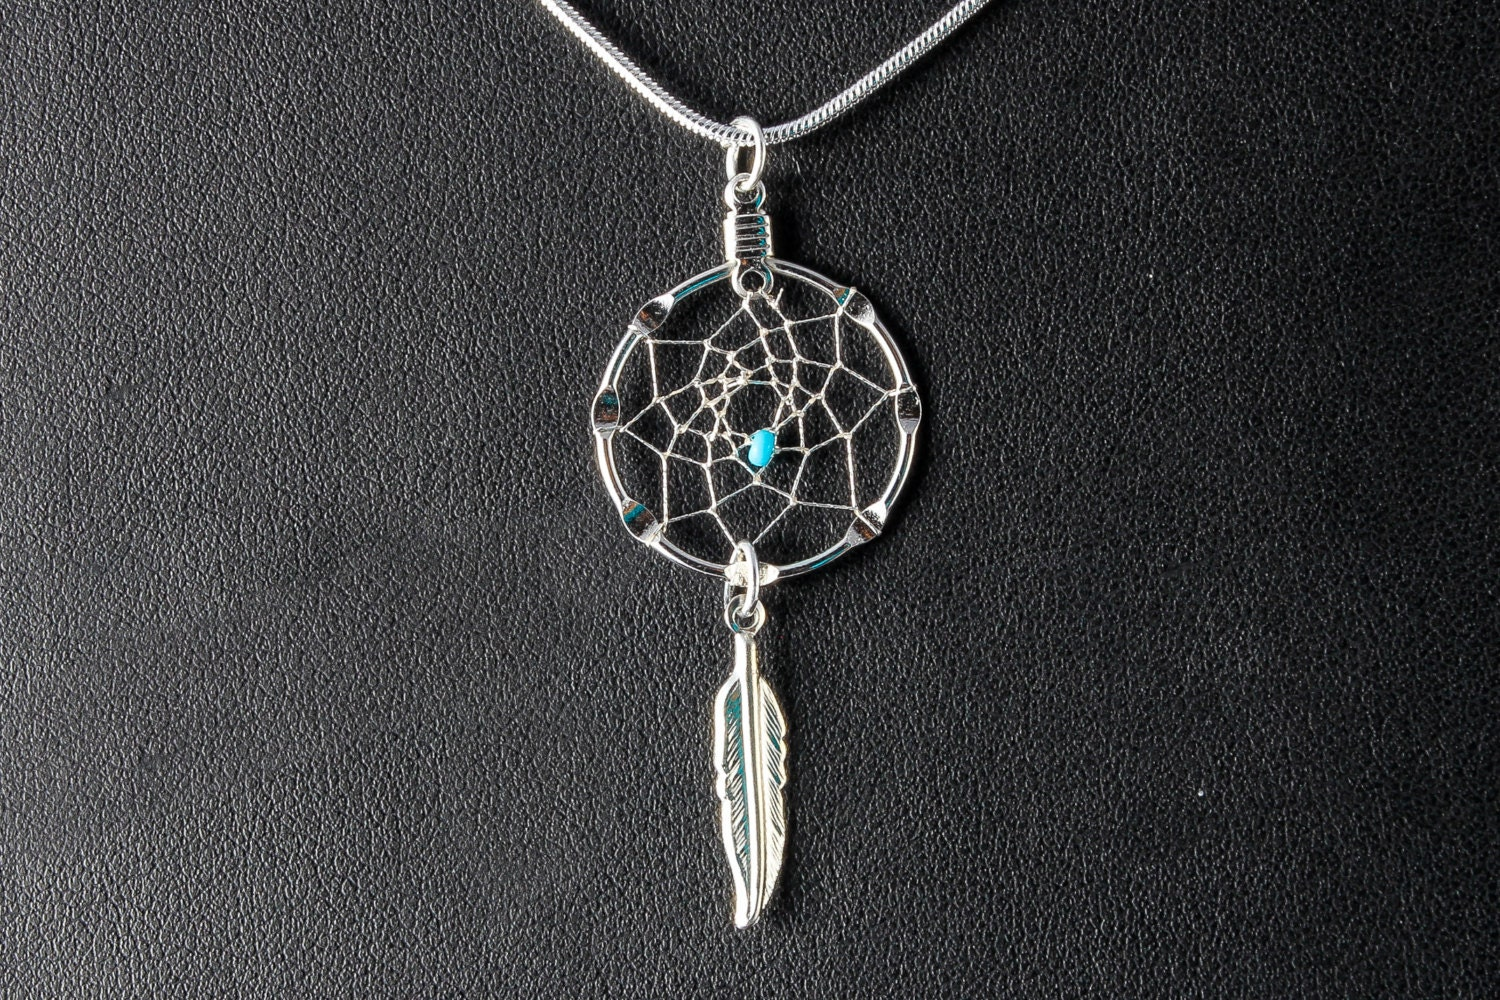 Handmade silver dream catcher necklace with turquoise bead for Dreamcatcher beads meaning